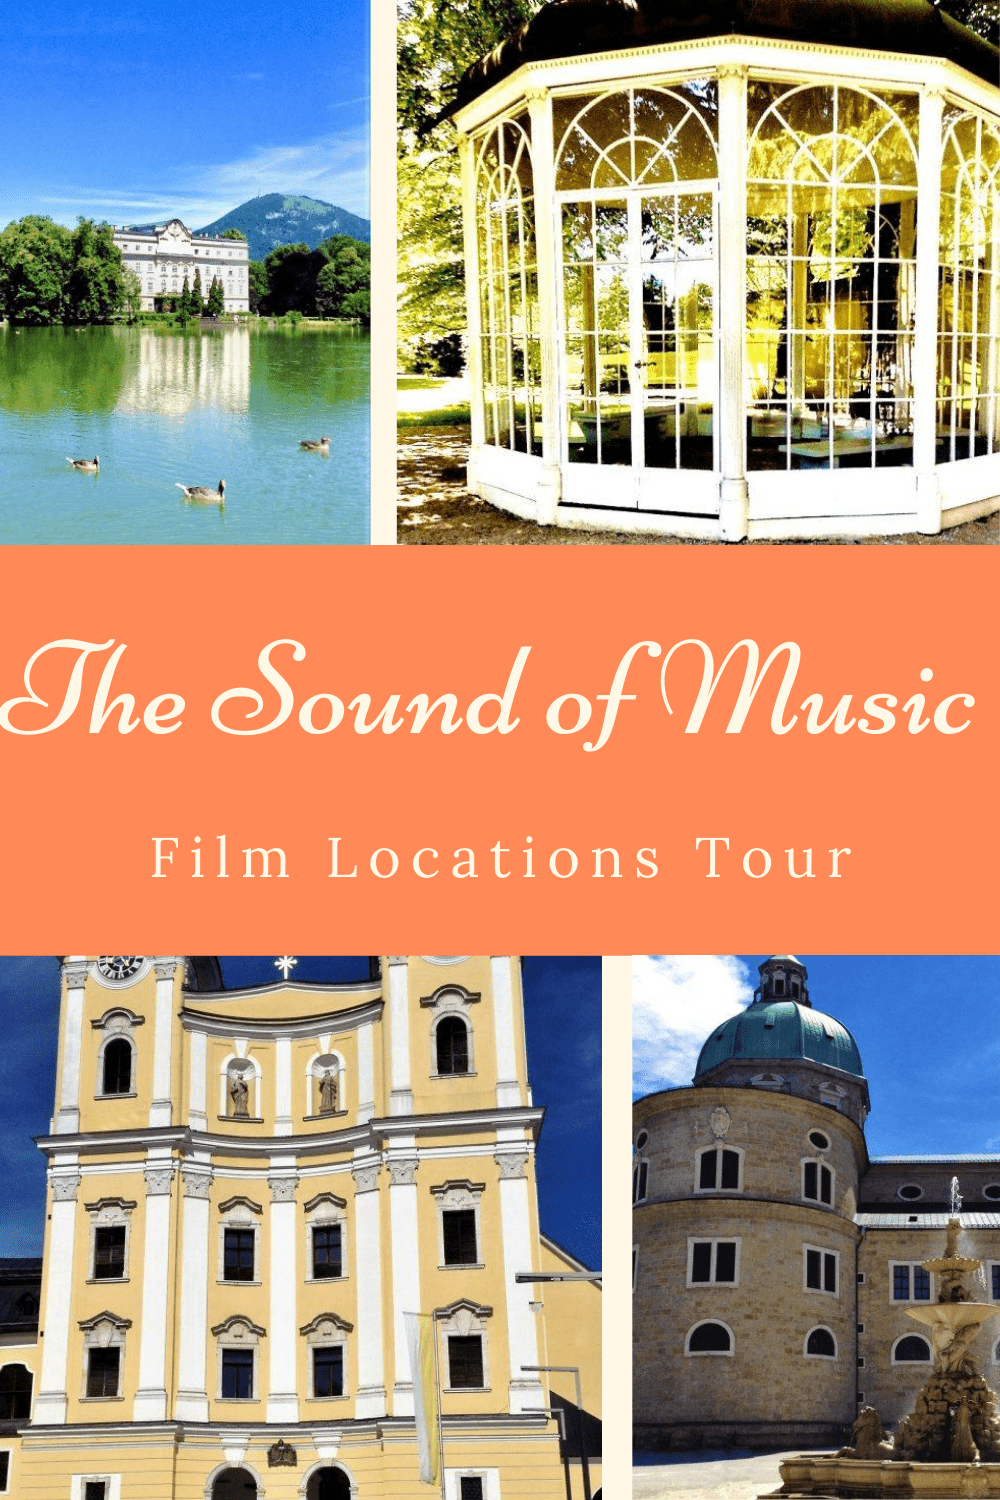 The Sound of Music Film Locations Tour